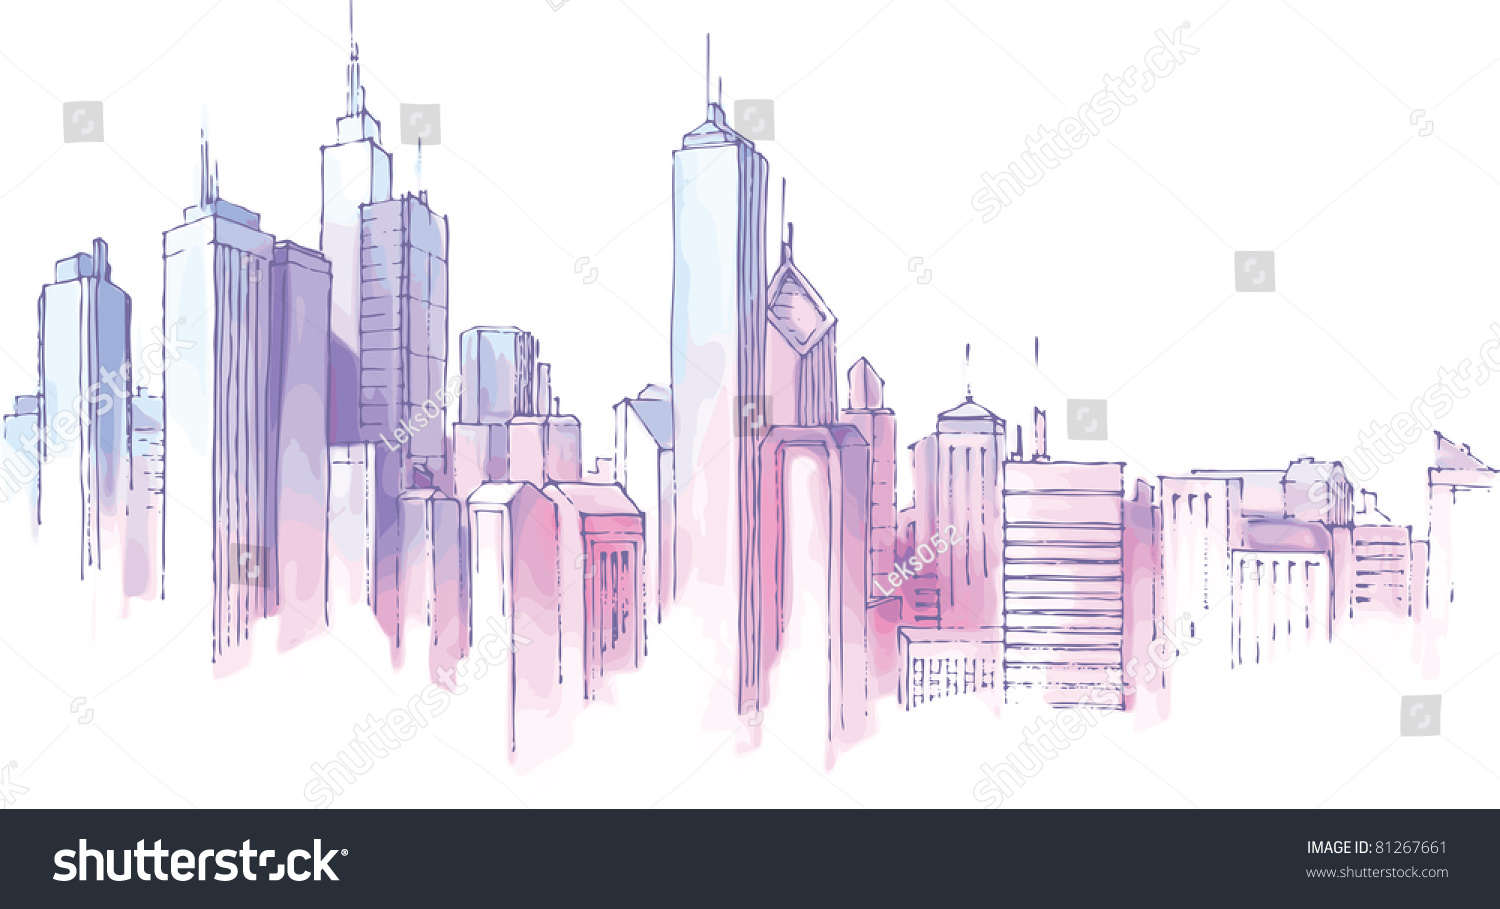 The hand-drown city skyline in a pastel shades. #81267661